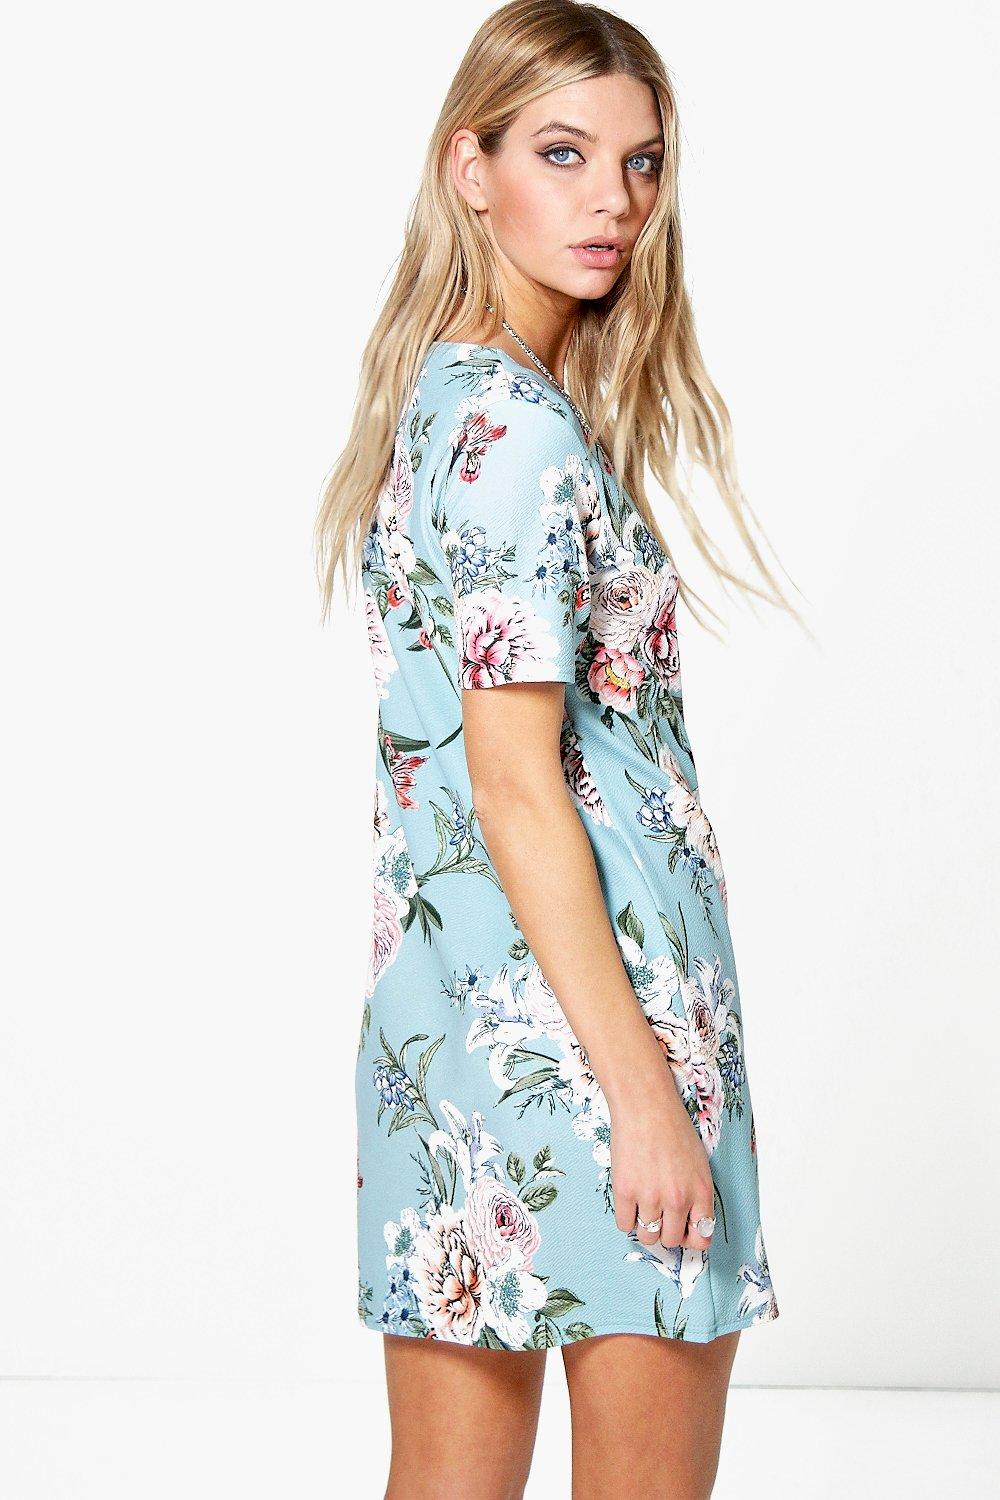 Kerry Flower Printed Summer Shift Dress at boohoo.com